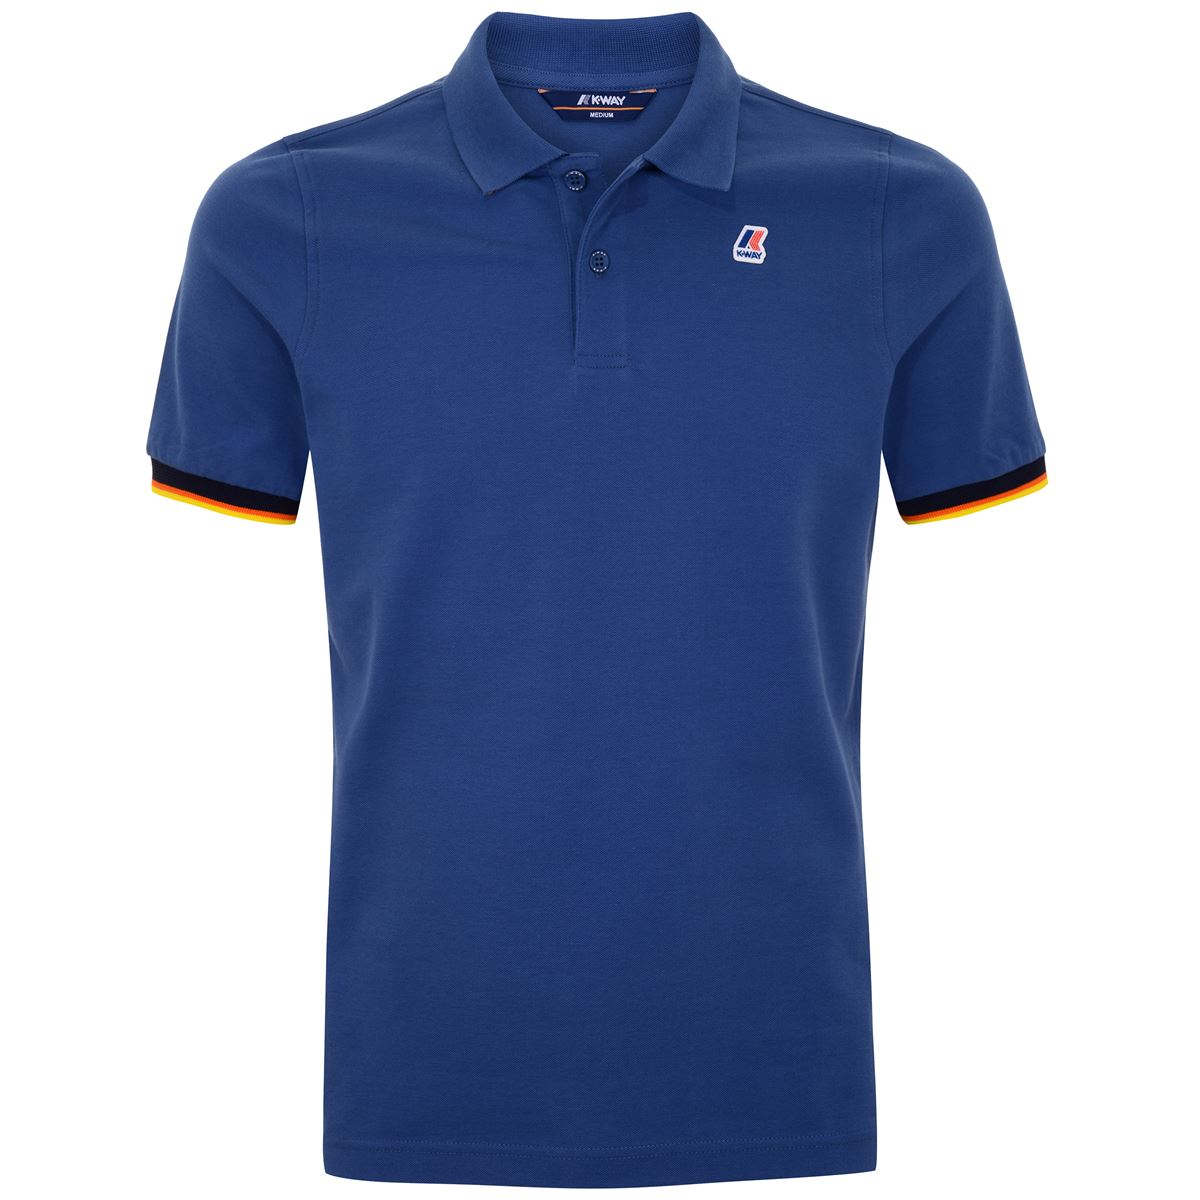 POLO VINCENT CONTRAST - Blue Riviera K-WAY | Polo Shirts | K008J50379